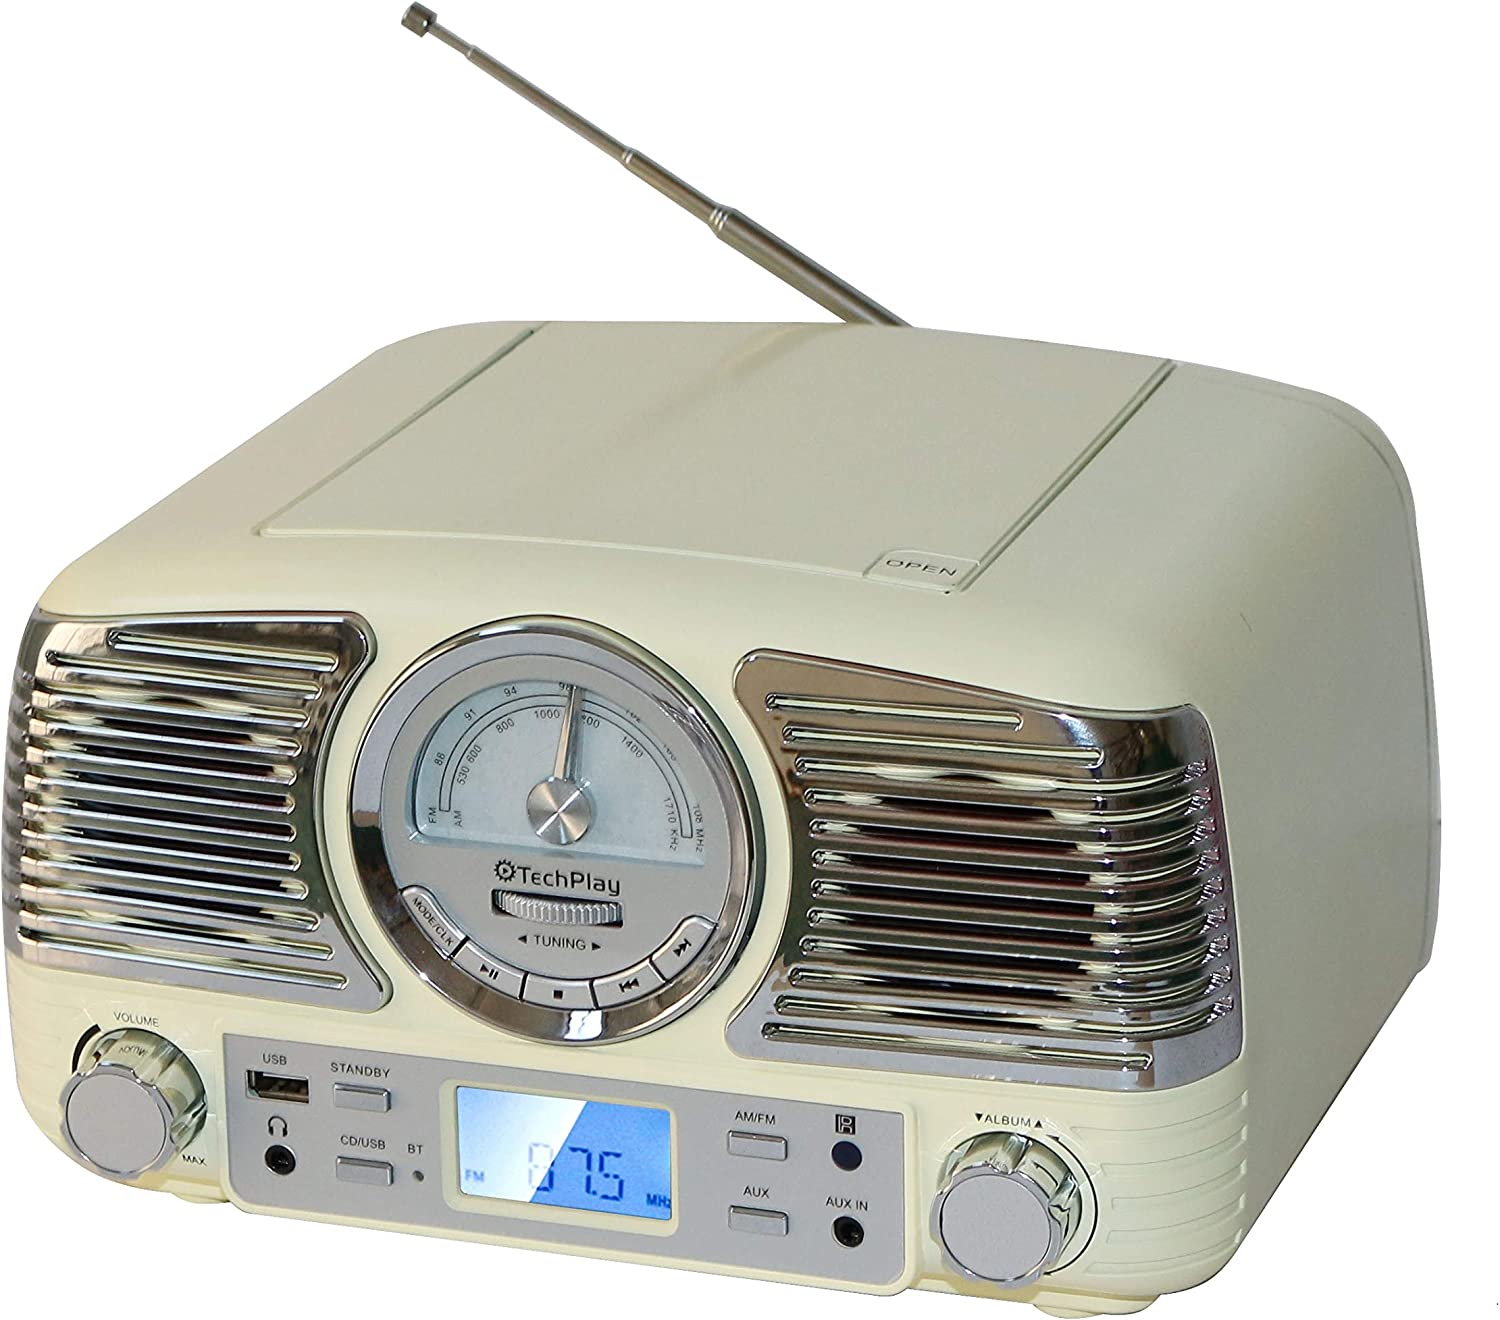 TechPlay QT62BT, Retro Design Compact Stereo CD, with AM/FM Rotary knob, Wireless Bluetooth Reception, and USB Port. with AUX in and Headphone Jack